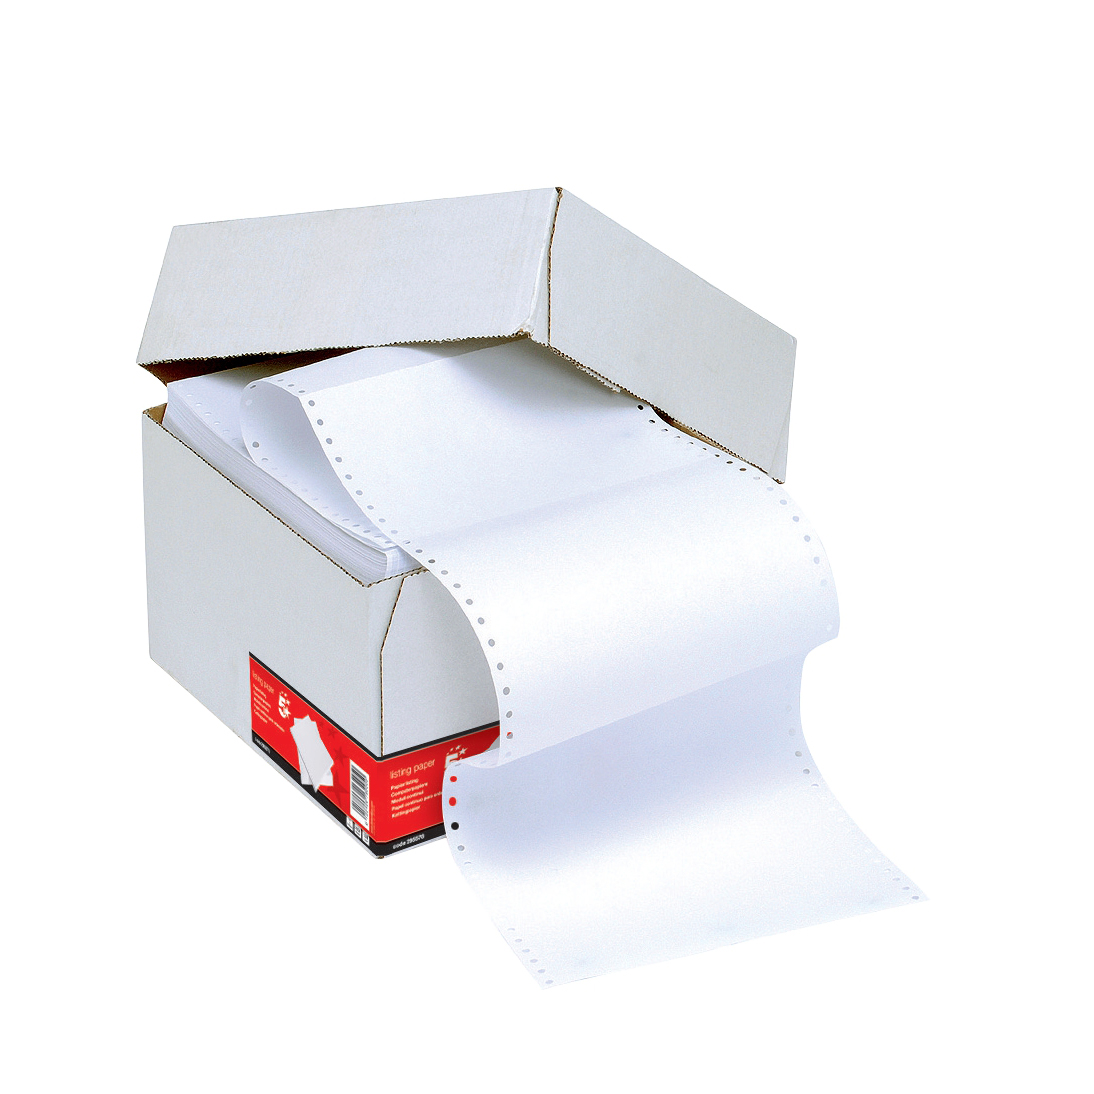 5 Star Office Listing Paper 1-Part Micro-perforated 70gsm 11inchx389mm Plain 2000 Sheets